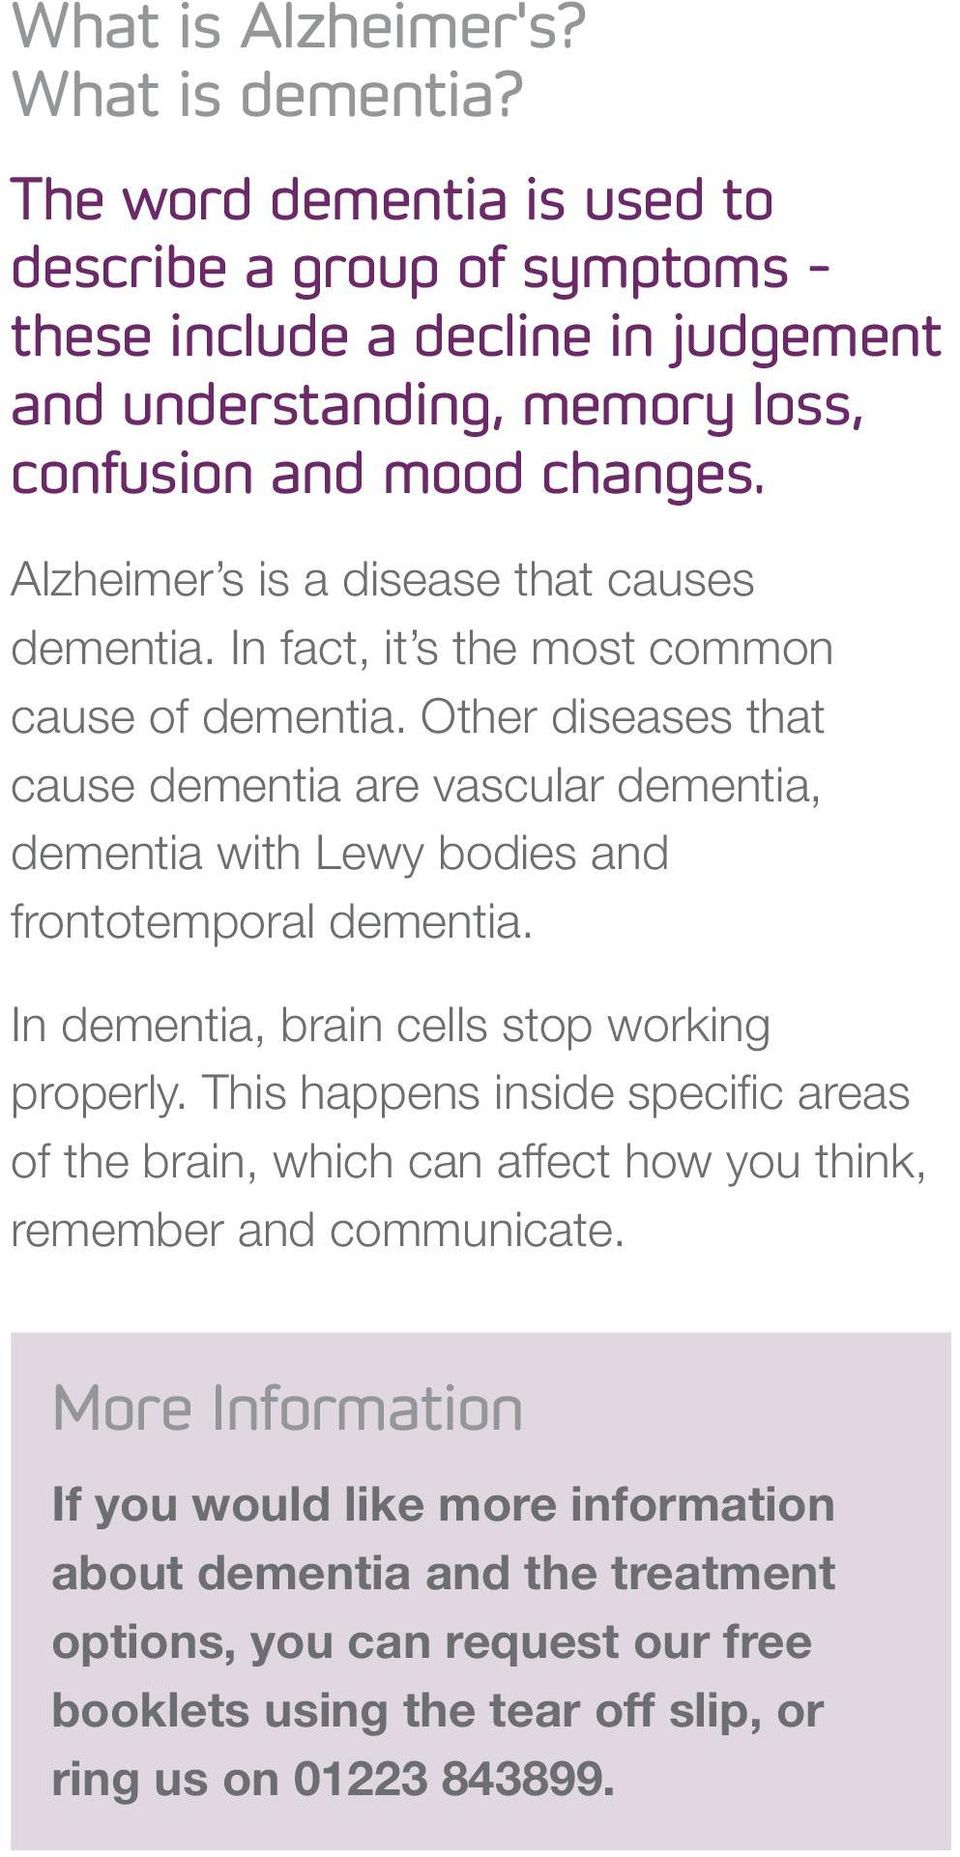 Alzheimer s is a disease that causes dementia. In fact, it s the most common cause of dementia.